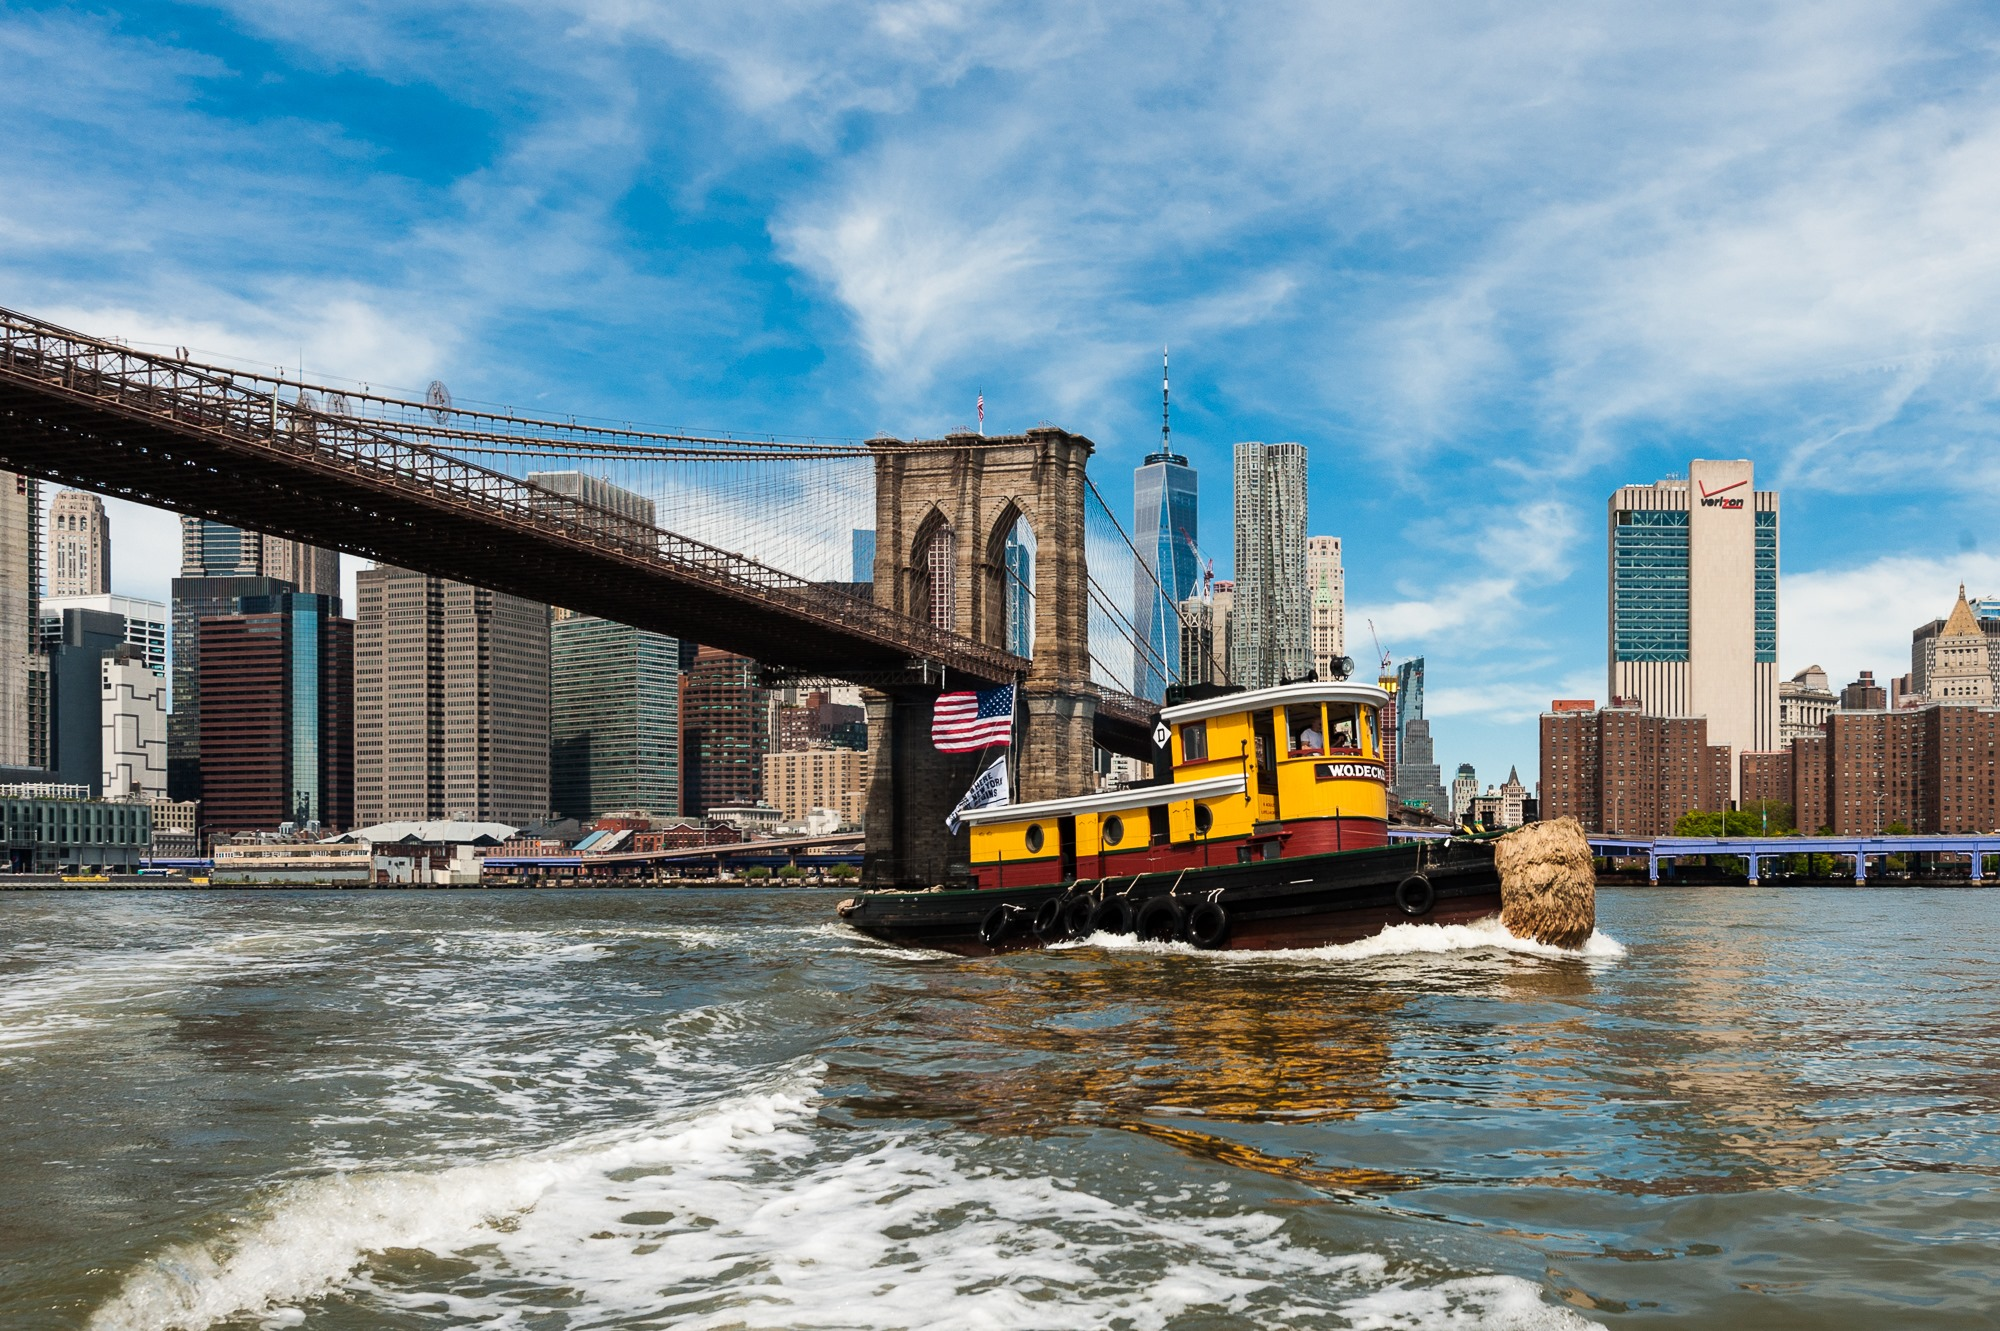 South Street Seaport Museum Tugboat Rides on W.O. Decker